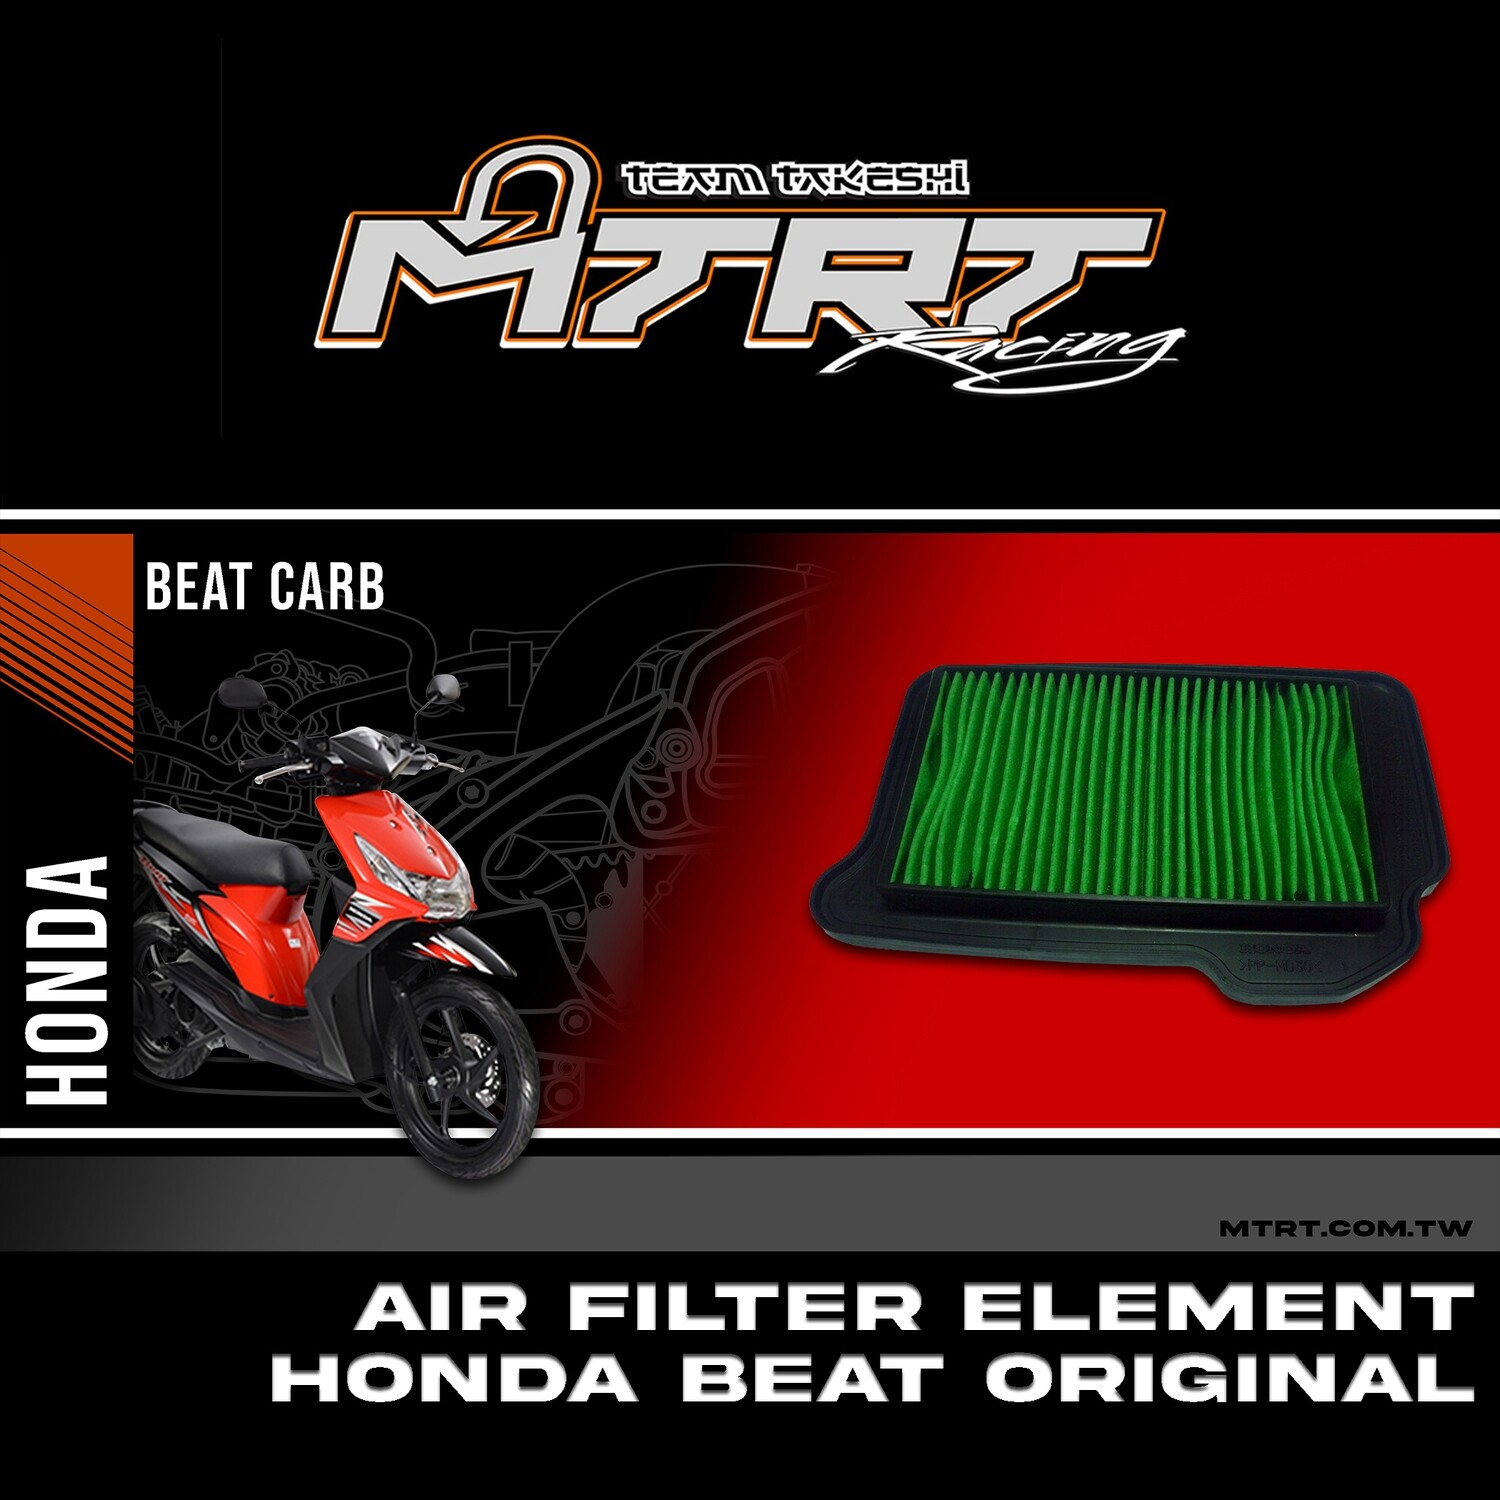 AIR FILTER ELEMENT HONDA BEAT Original